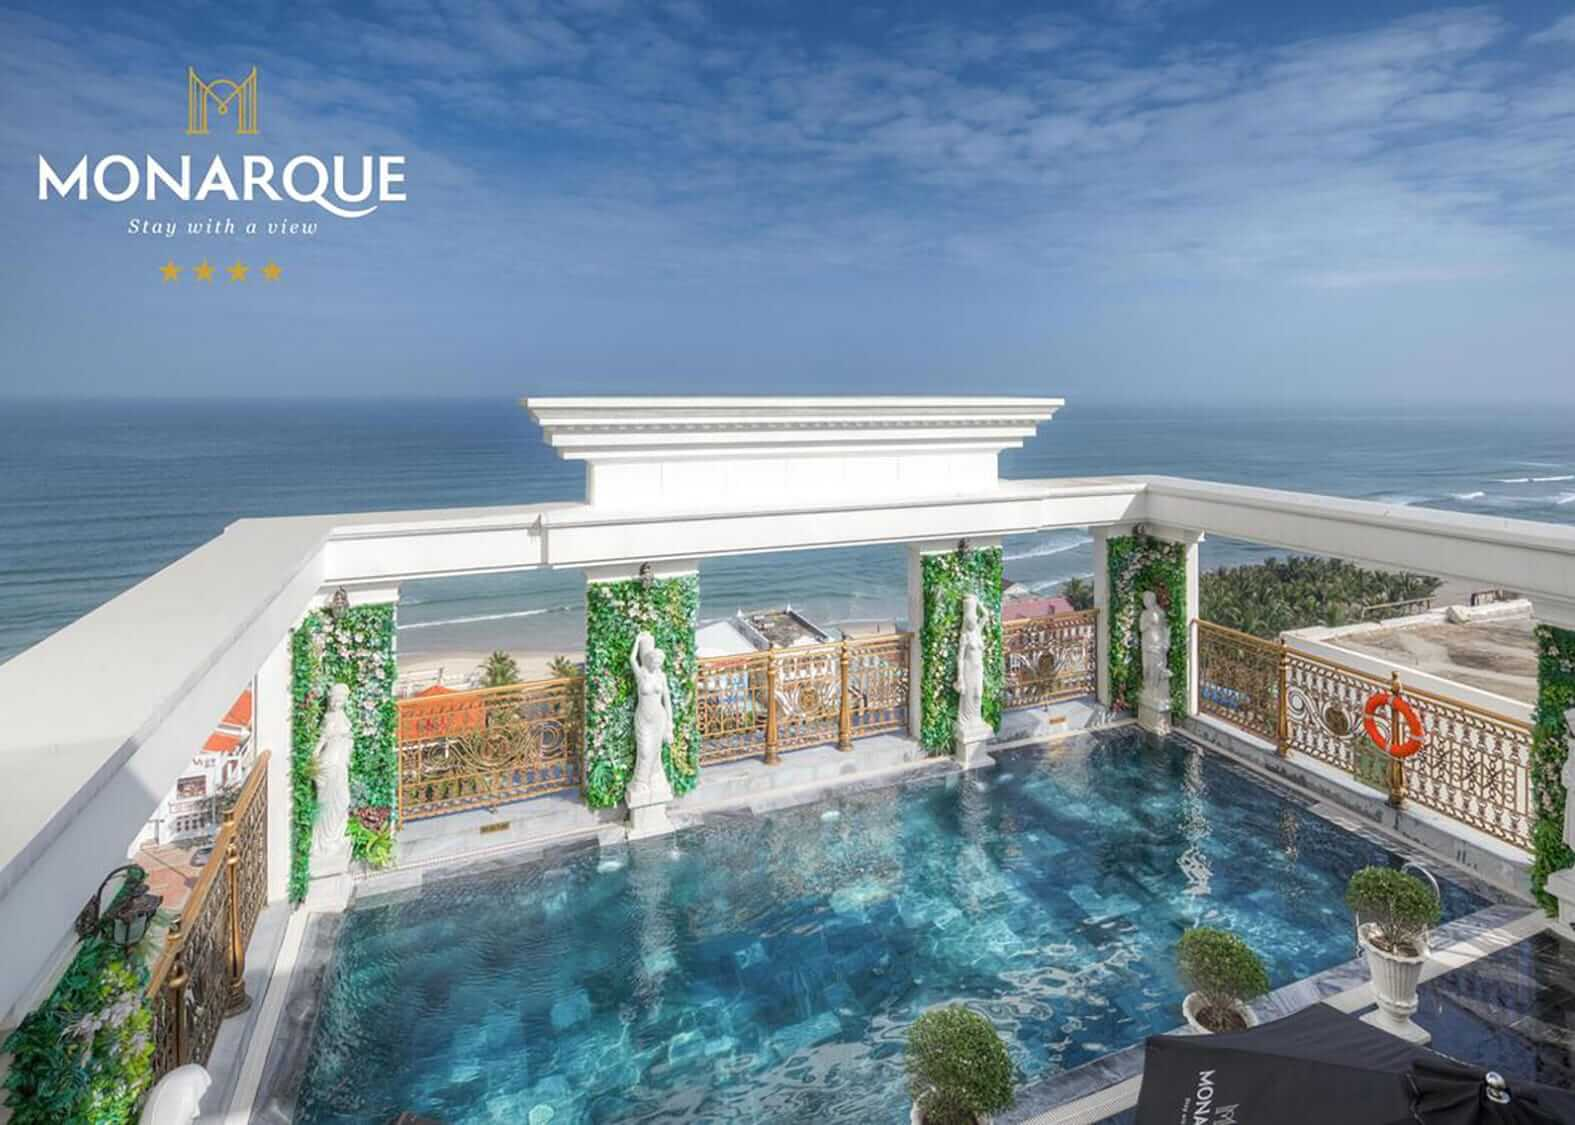 Rooftop pool view of Monarque